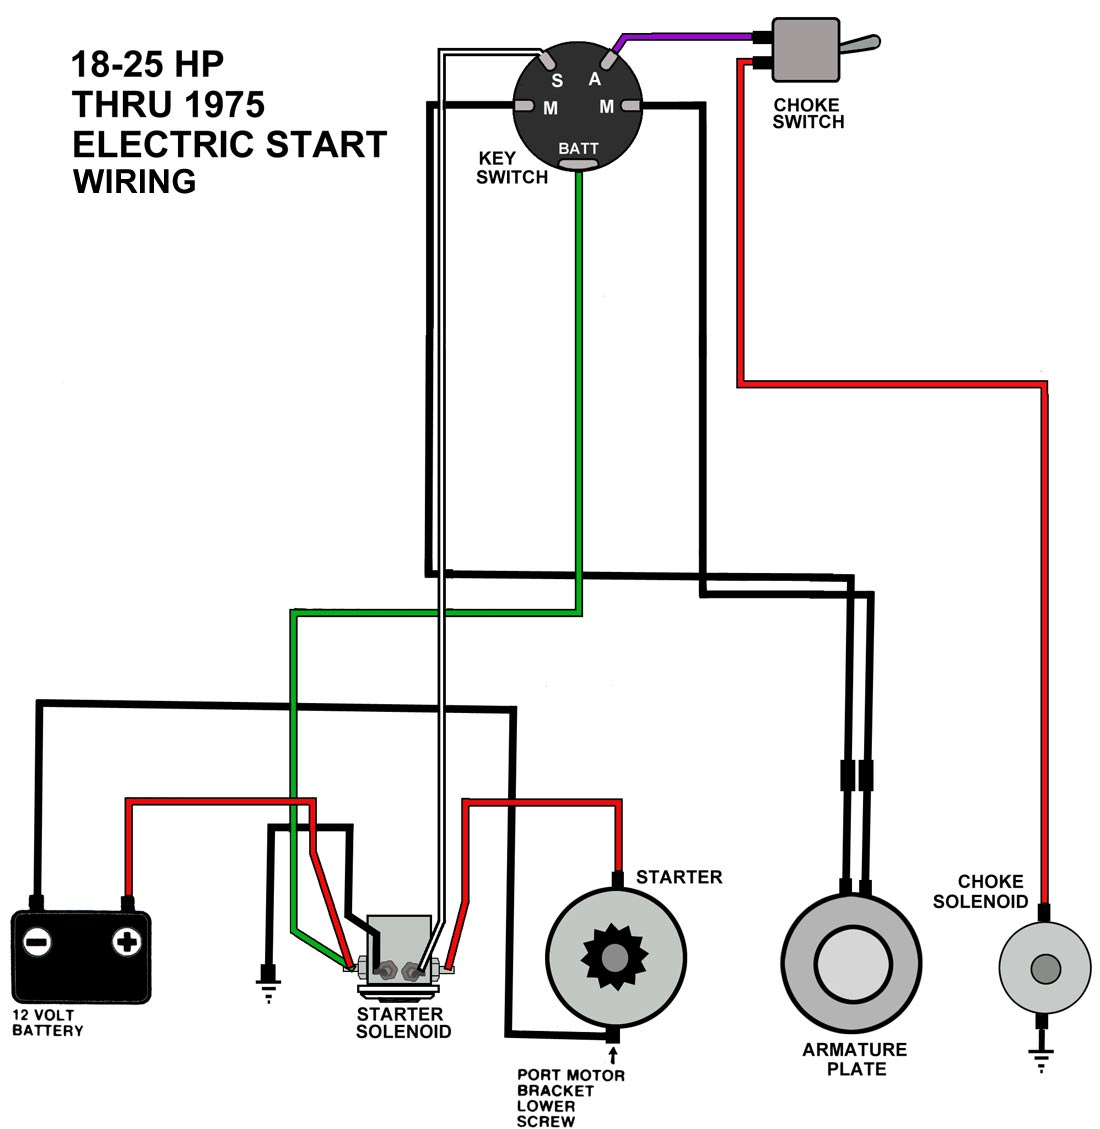 hight resolution of sel starter solenoid wiring diagram wiring database library 12 volt linear actuator wiring diagram 12 volt solenoid wiring diagram sel